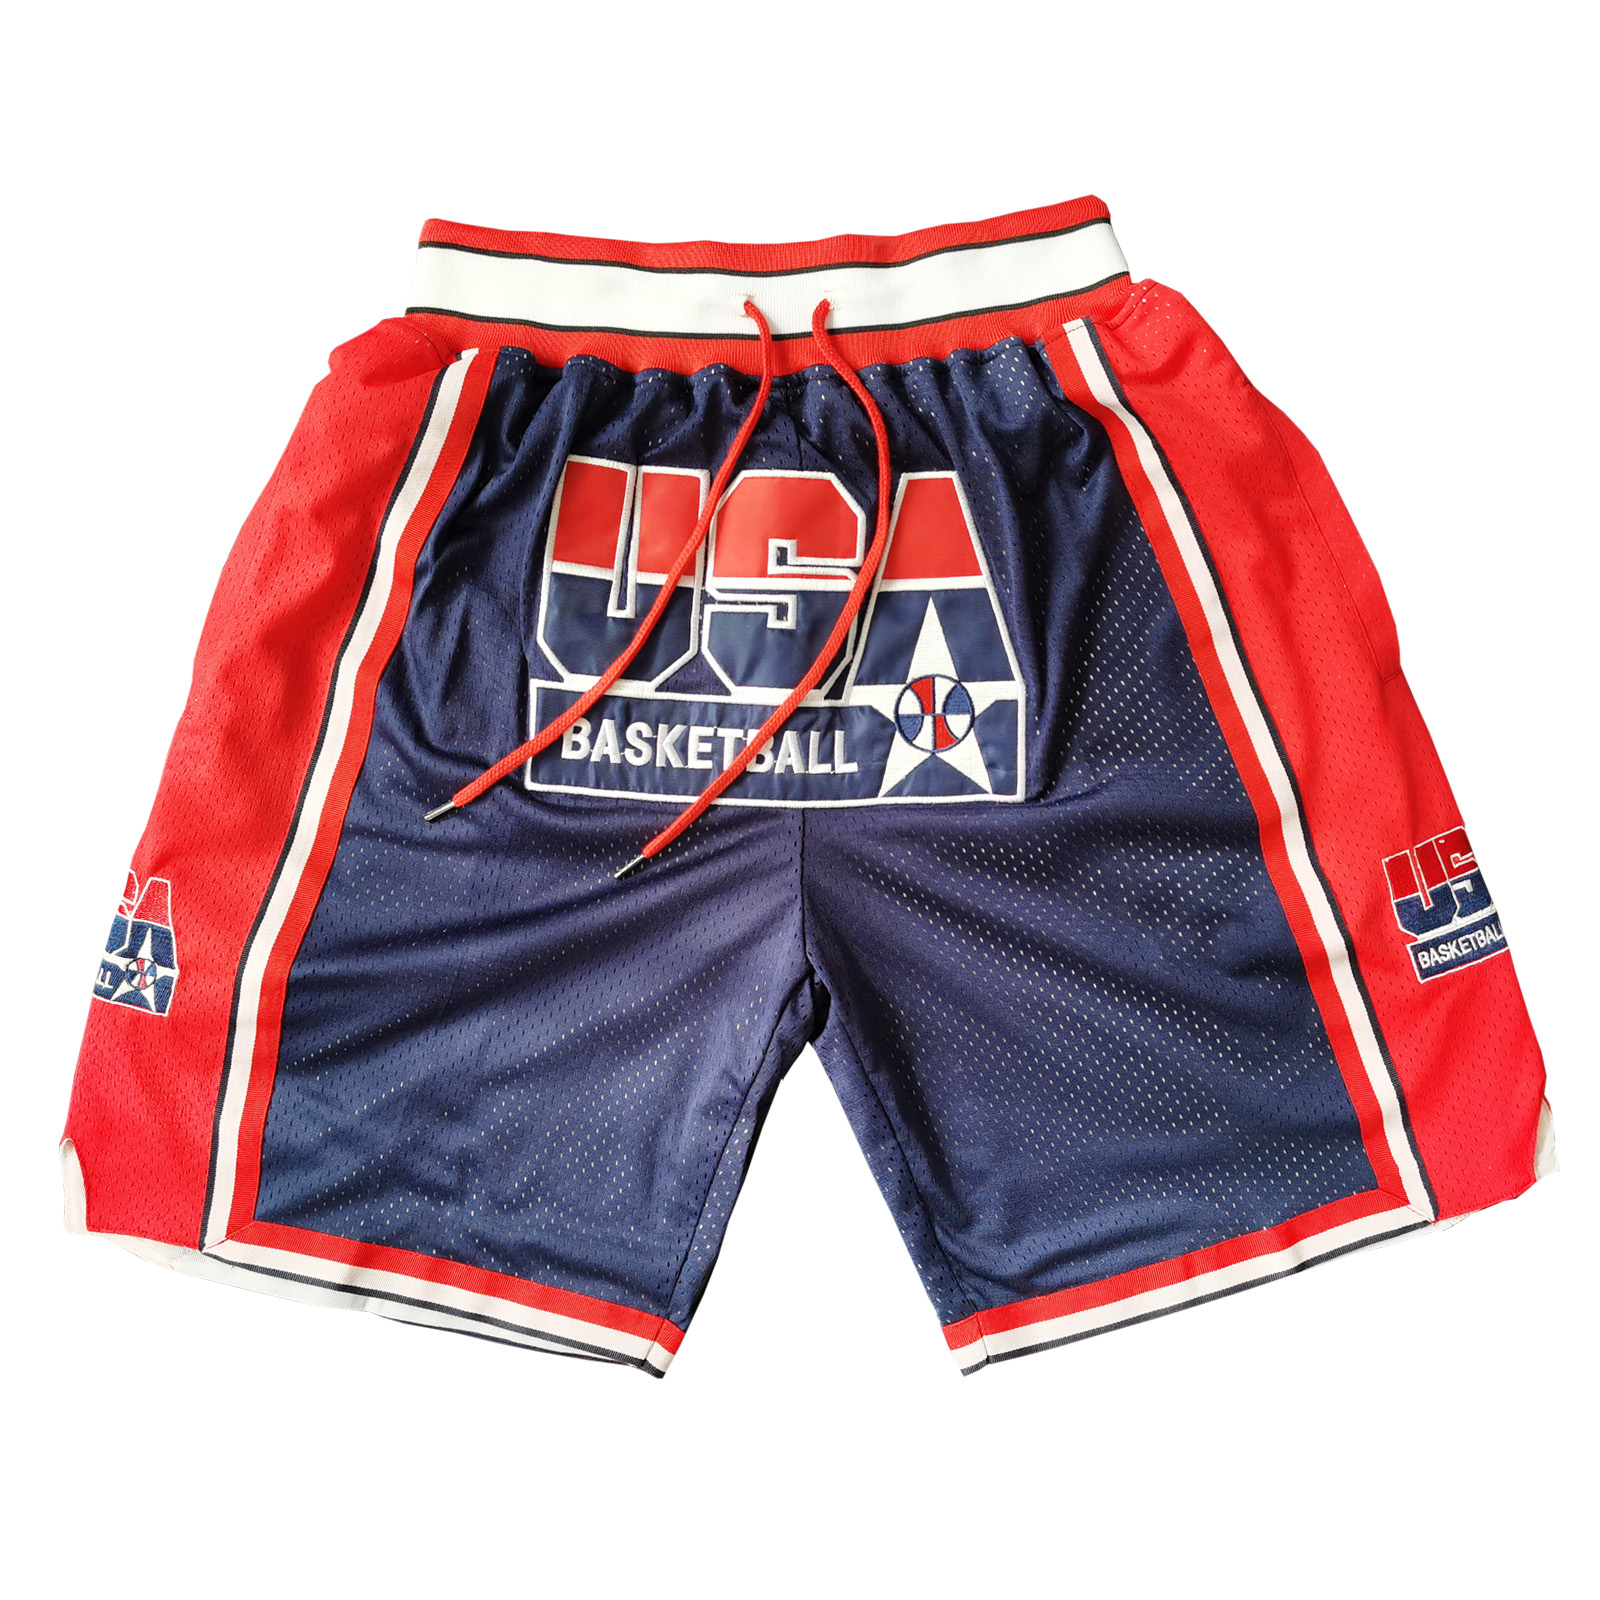 1992 USA Dream Team Basketball Shorts with Pockets image